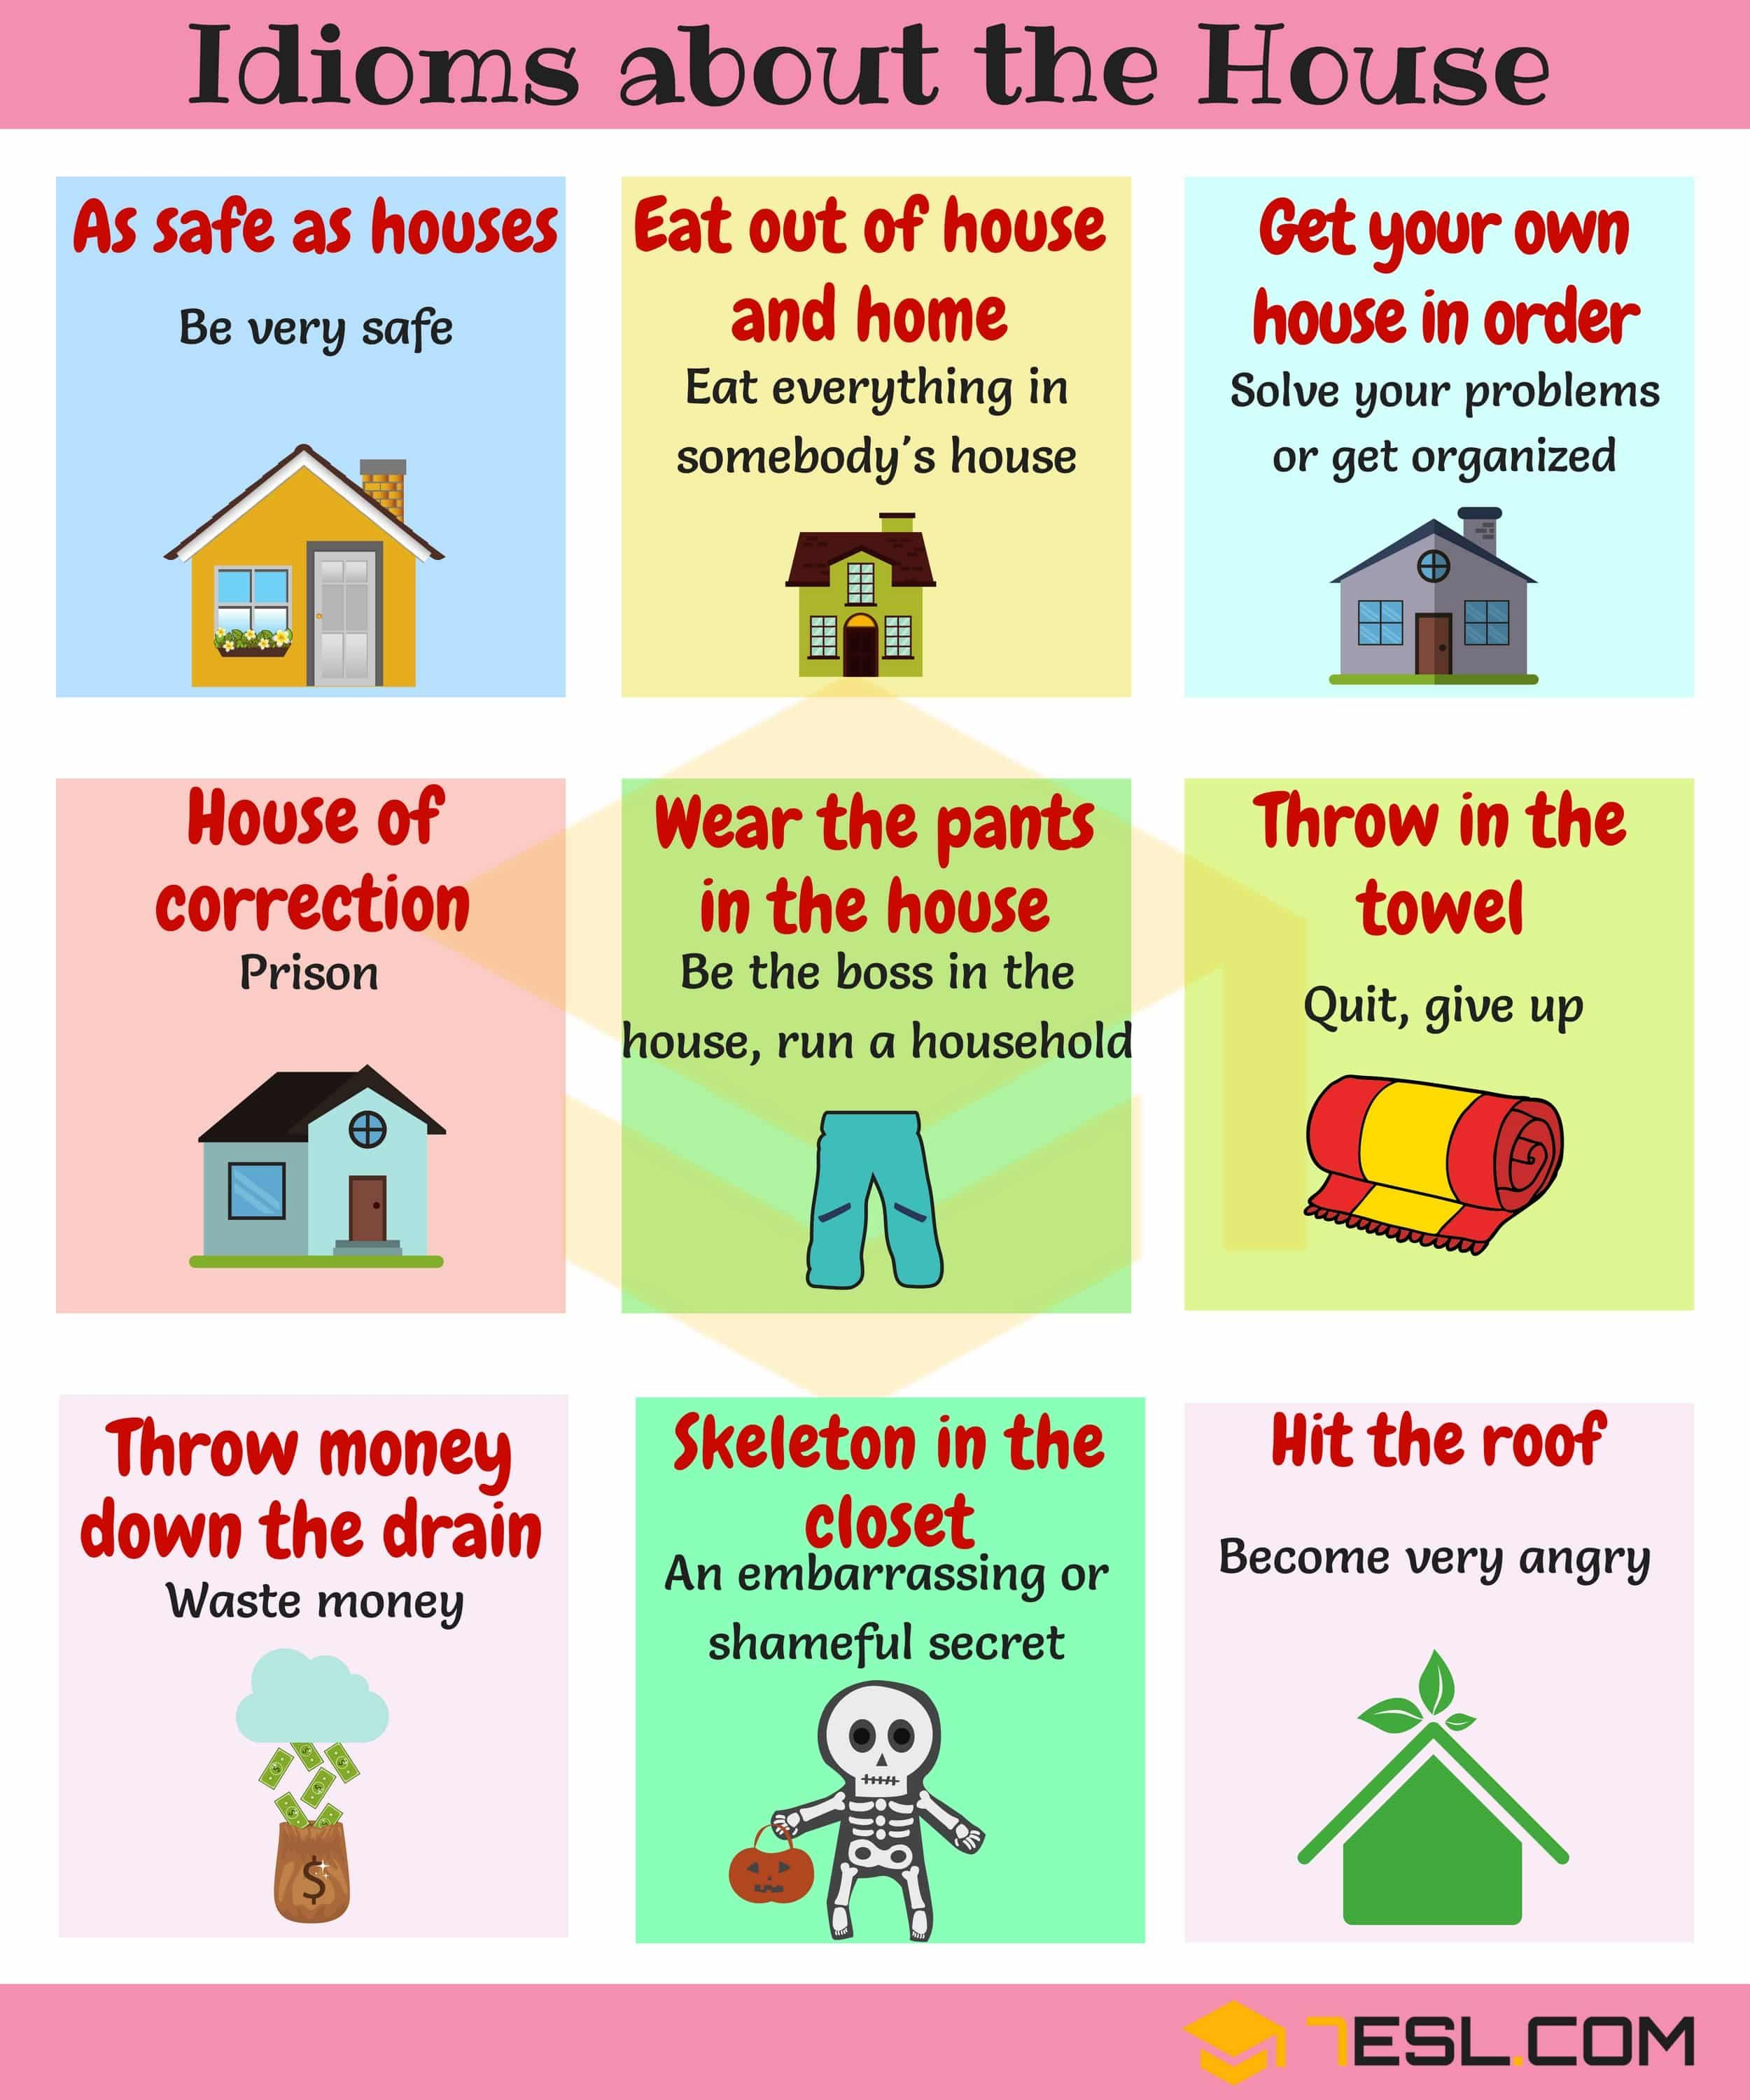 Home Idioms 28 Useful Idioms About The House And Home 7 E S L Idioms Learn English Vocabulary English Idioms